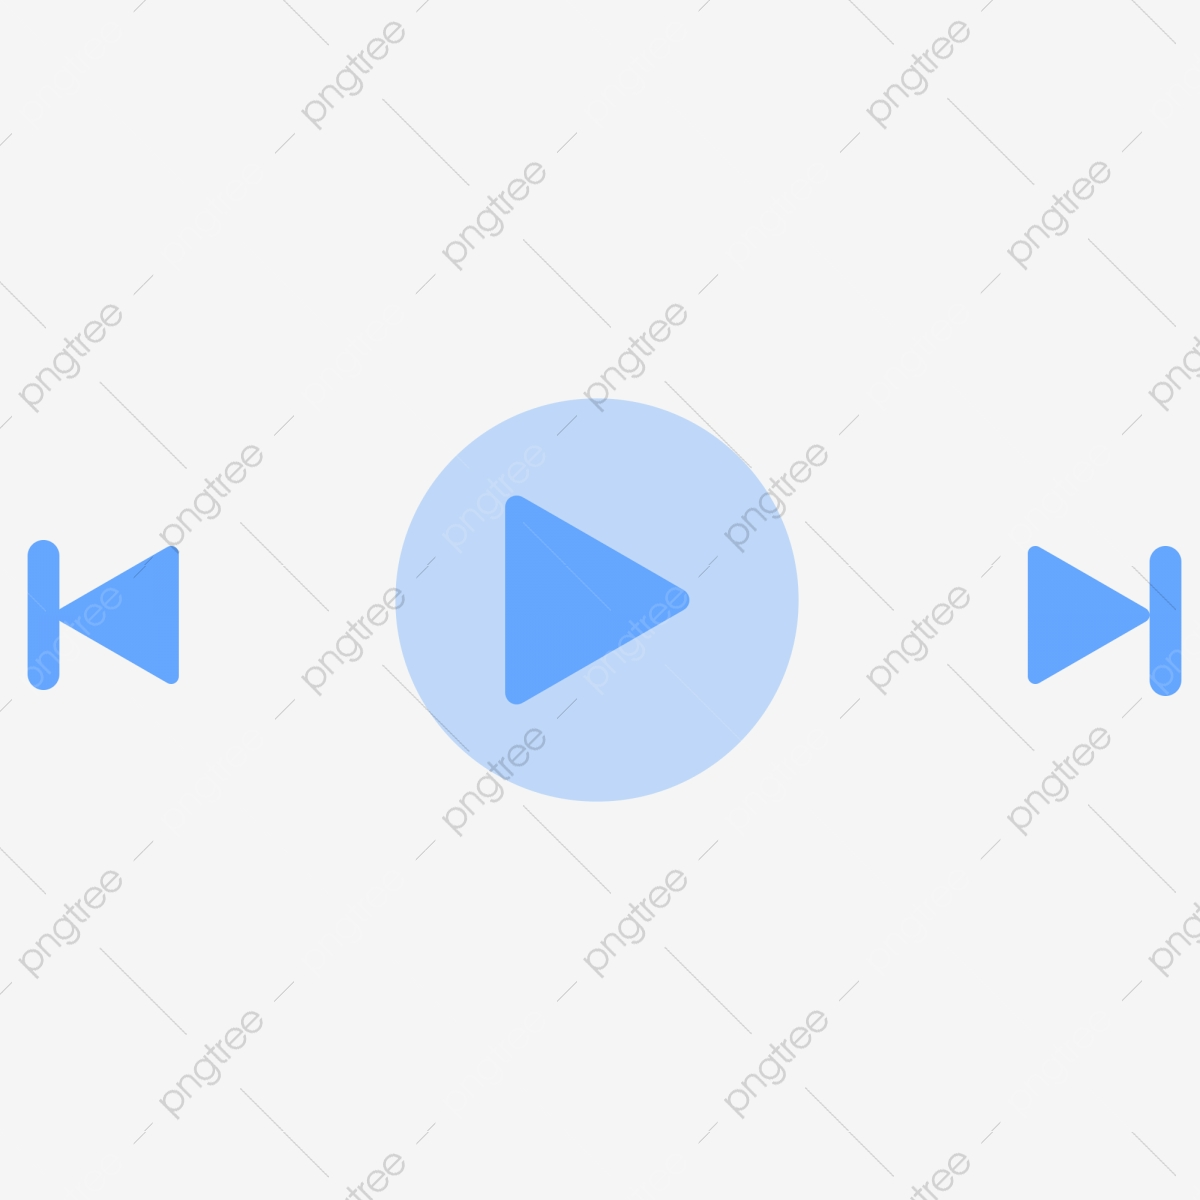 Simple Blue Flat Music Video Play Button Ui Icon Blue Ui Simple Simple Icon Png Transparent Clipart Image And Psd File For Free Download